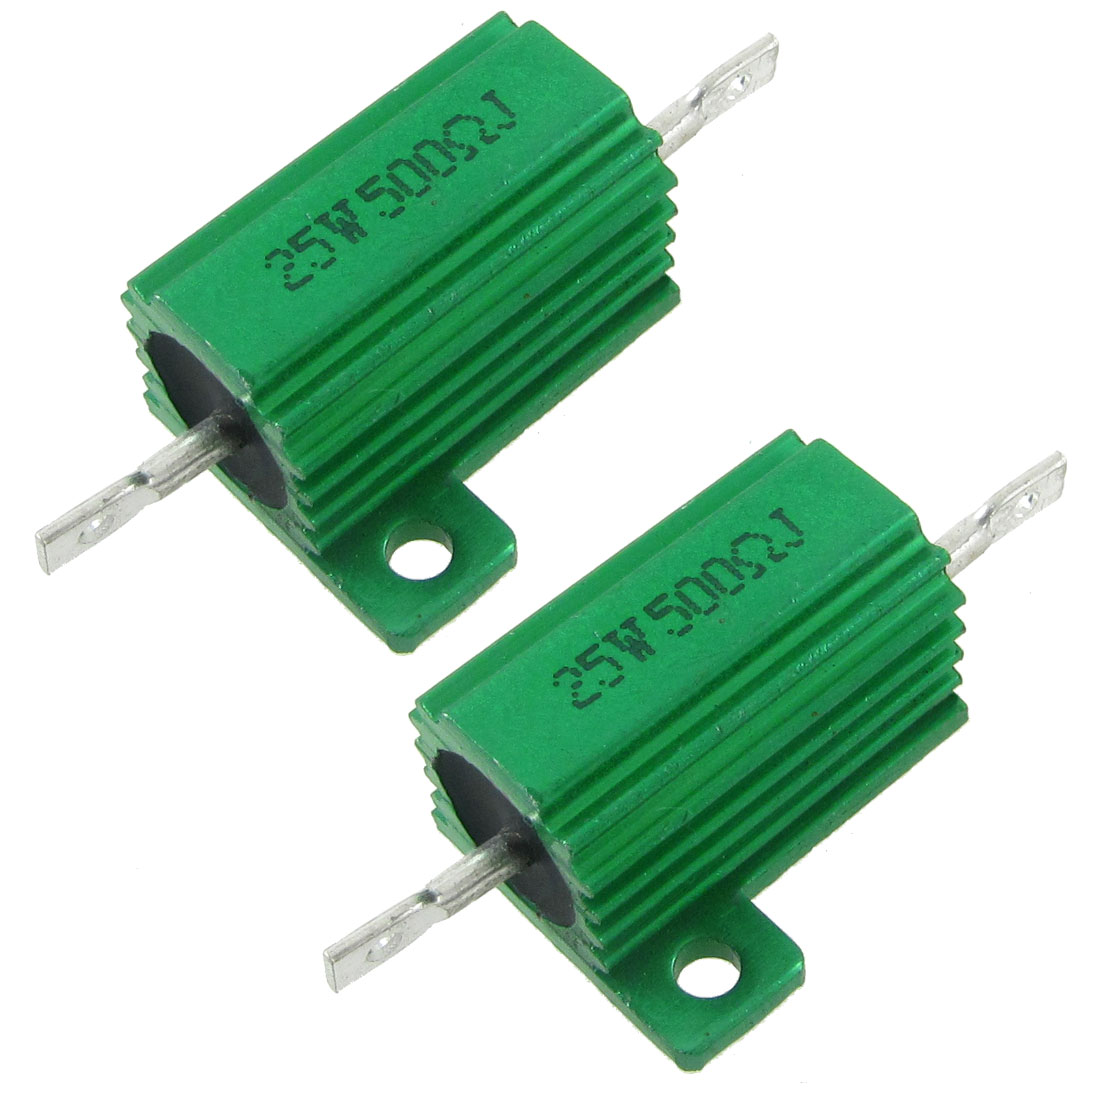 2 Pcs Chassis Mounted Green Aluminum Clad Wirewound Resistors 25W 500 Ohm 5%